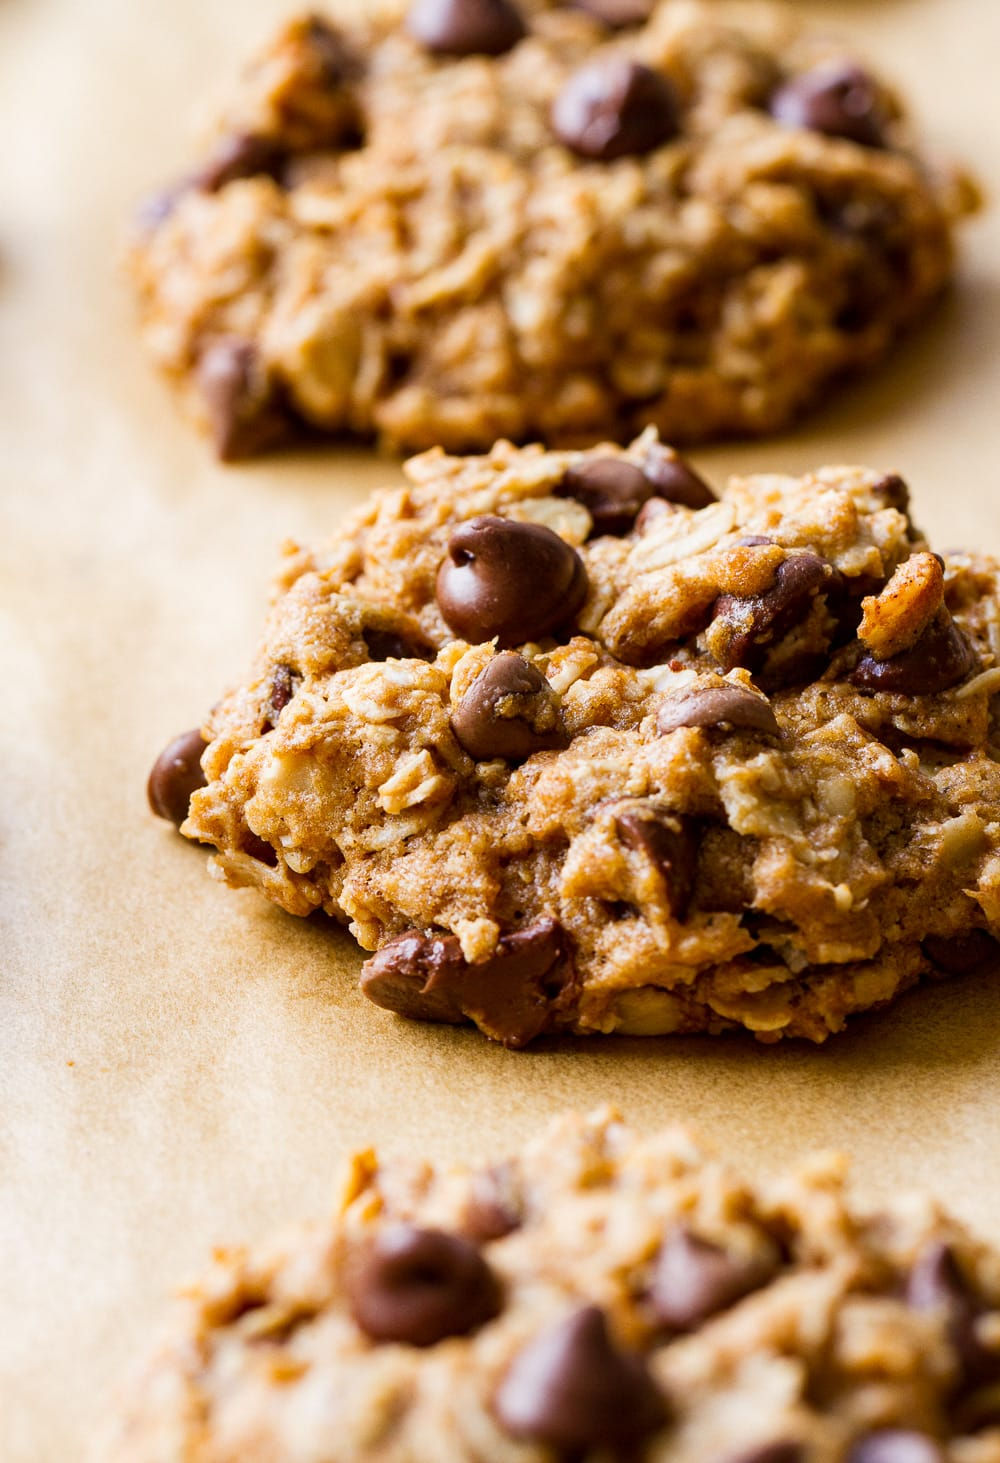 side angle view of vegan oatmeal chocolate chip cookies just baked on a cookie sheet.